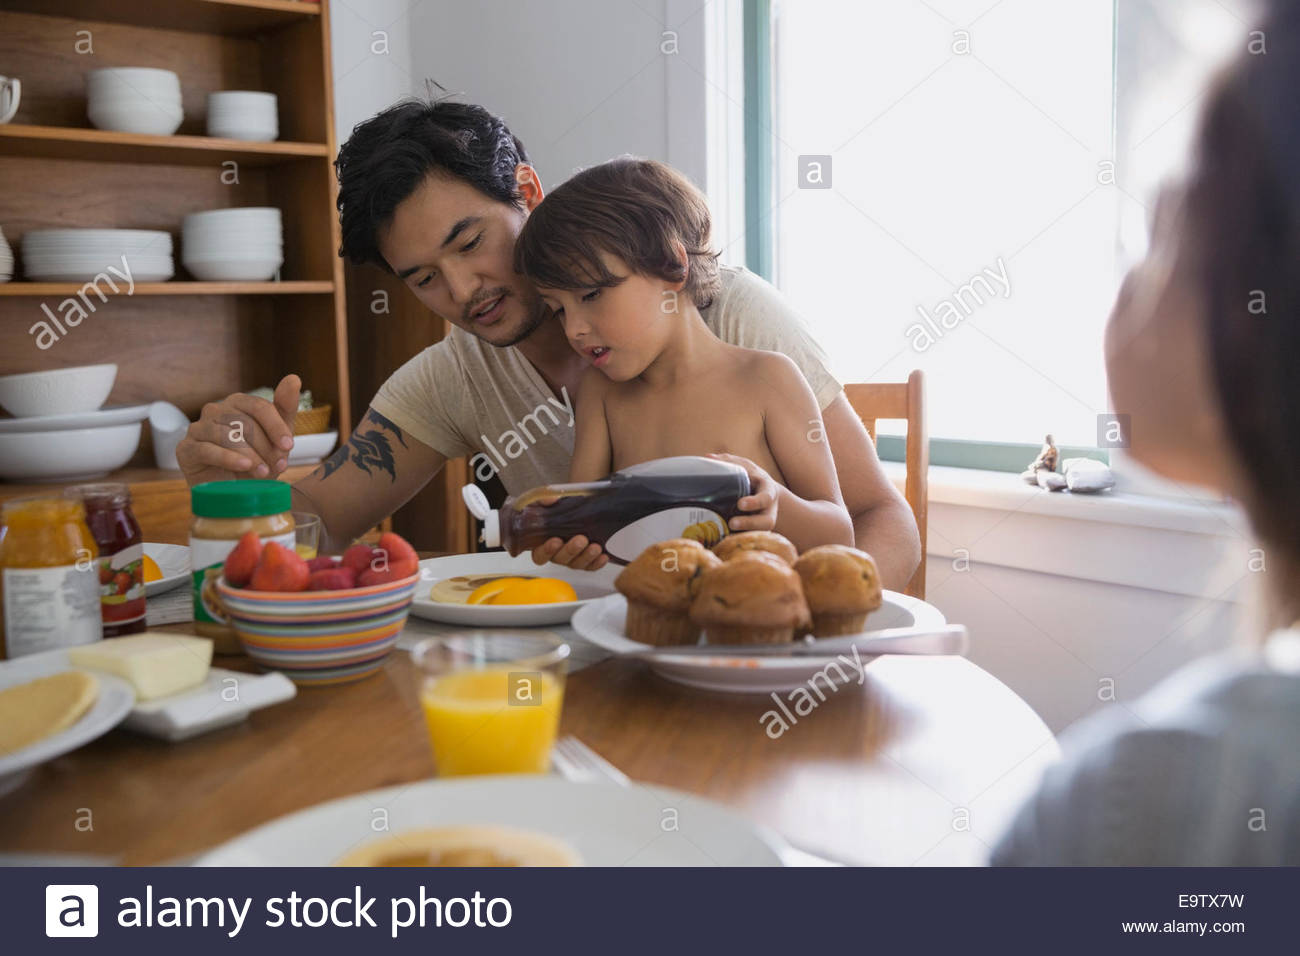 Father watching son pour syrup on pancakes - Stock Image